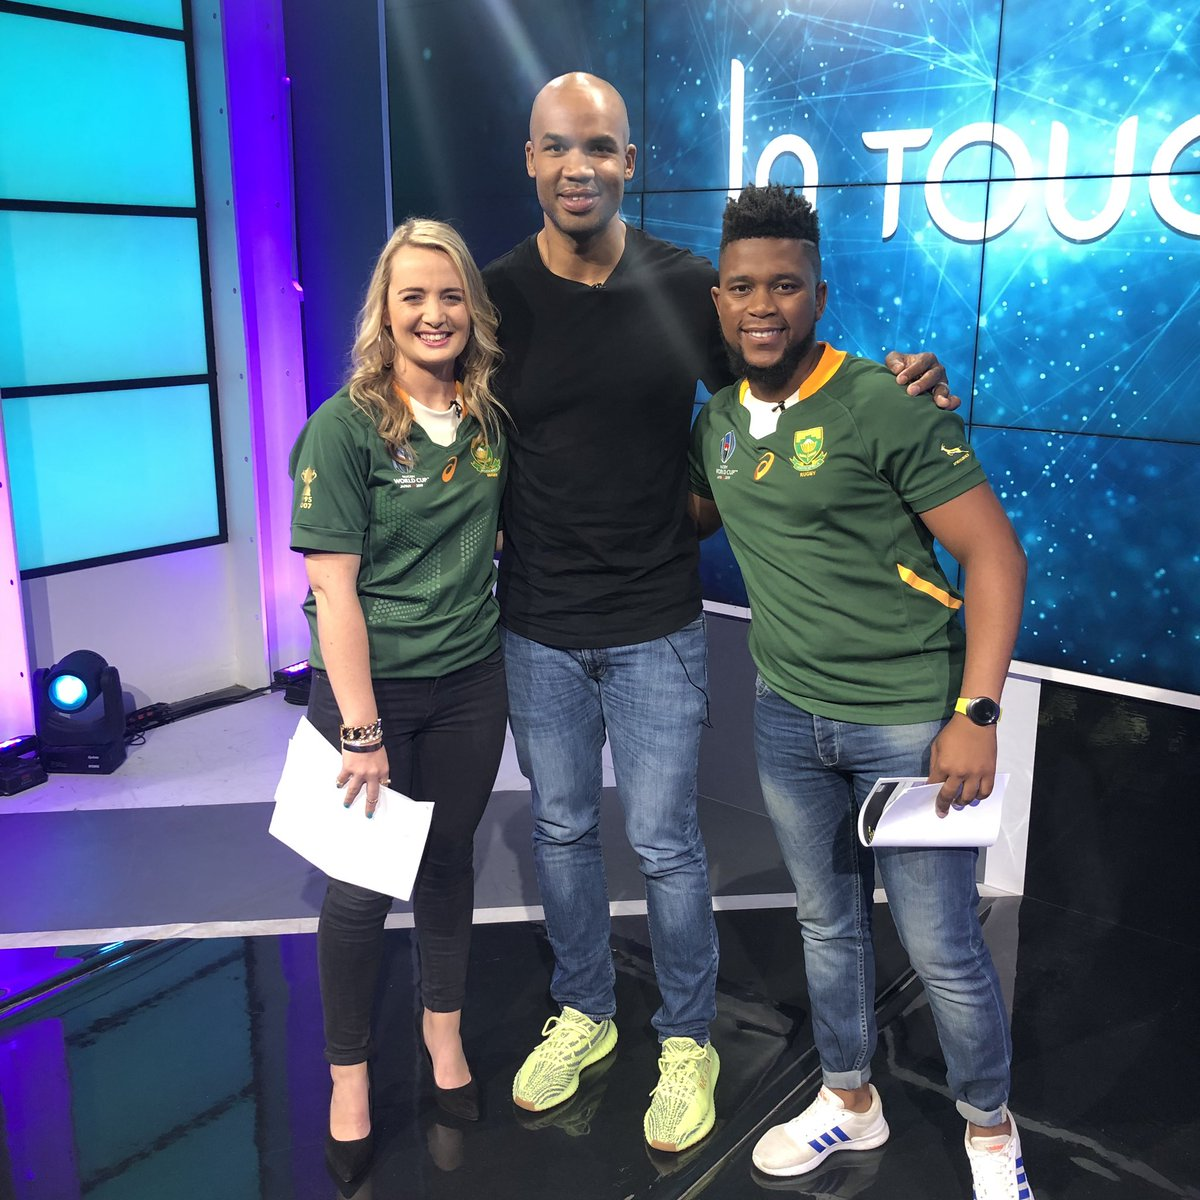 #InTouch is back, just in time for #RWC2019 🏉 We have two new hosts in @catolouw and @SamLudidi and a number of fantastic guests over the coming weeks. First up is @Springboks legend and World Cup winner @jppietersen14 👏 Watch LIVE on Facebook >> bit.ly/InTouchJPPiete…